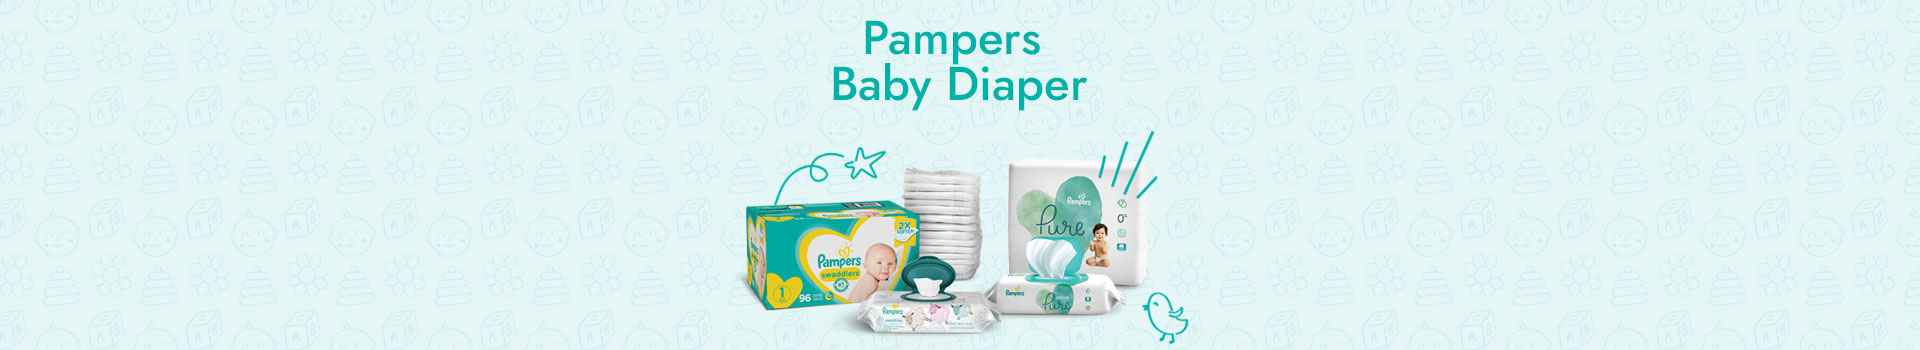 Pampers  Baby Diaper